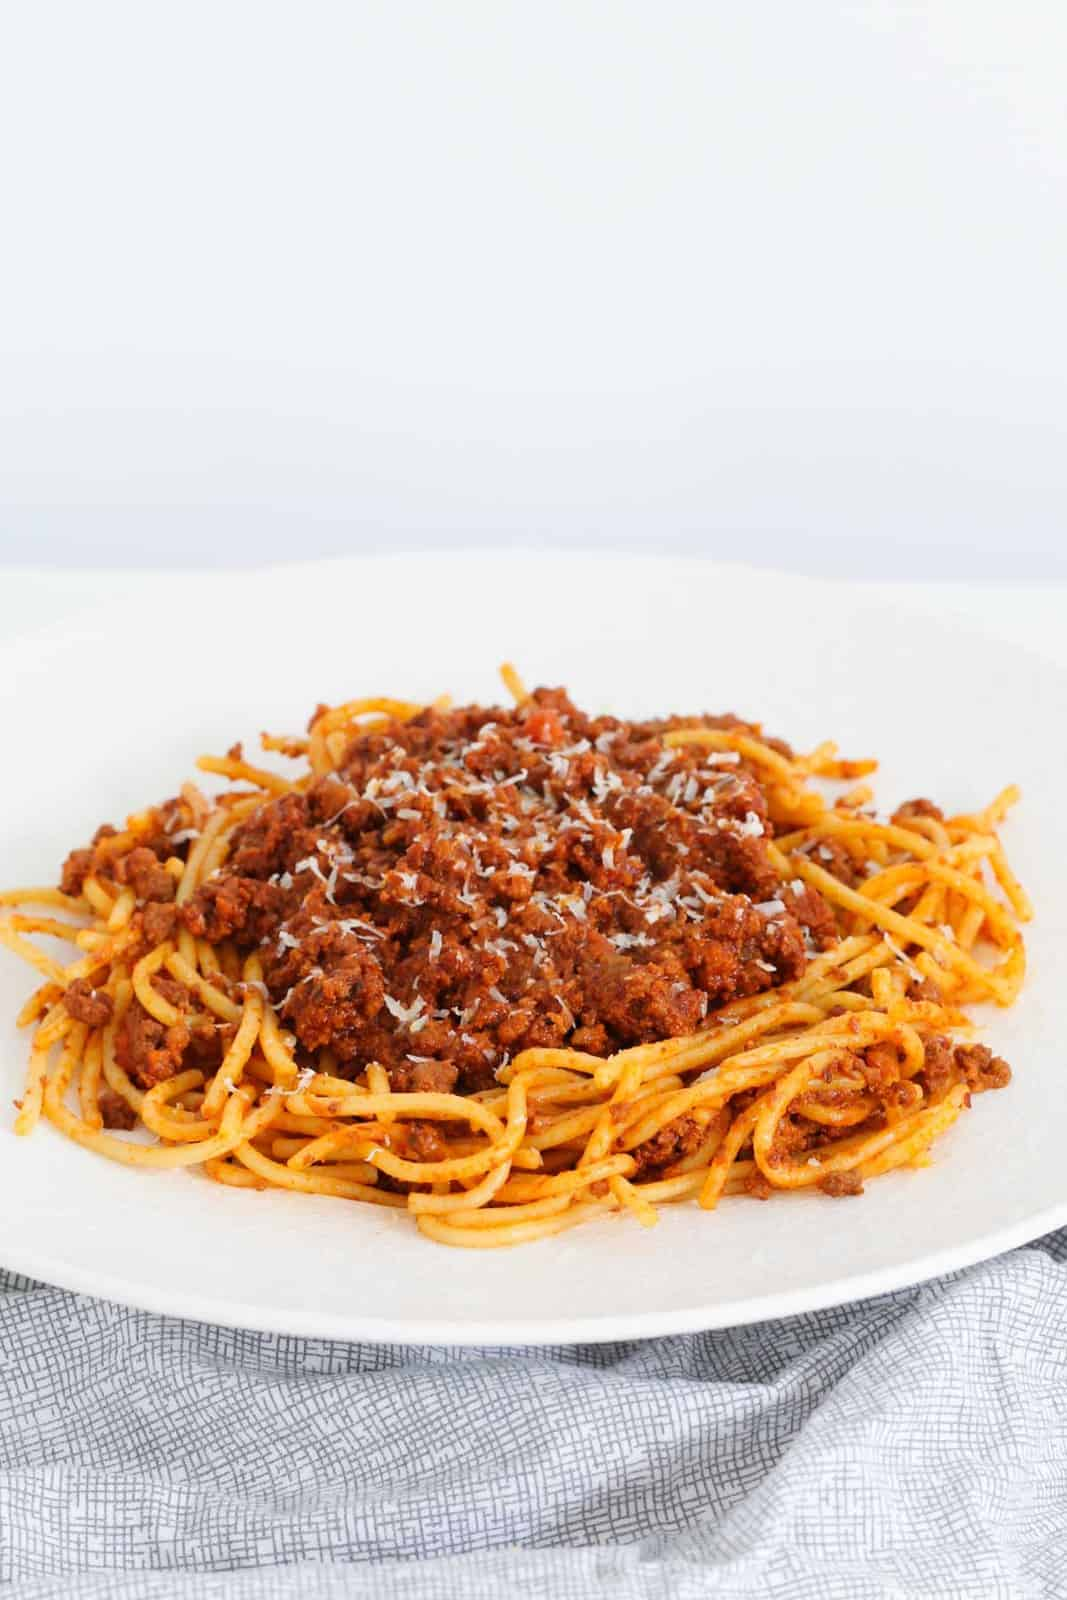 A bowl of spaghetti with minced meat sauce, sprinkled with grated parmesan